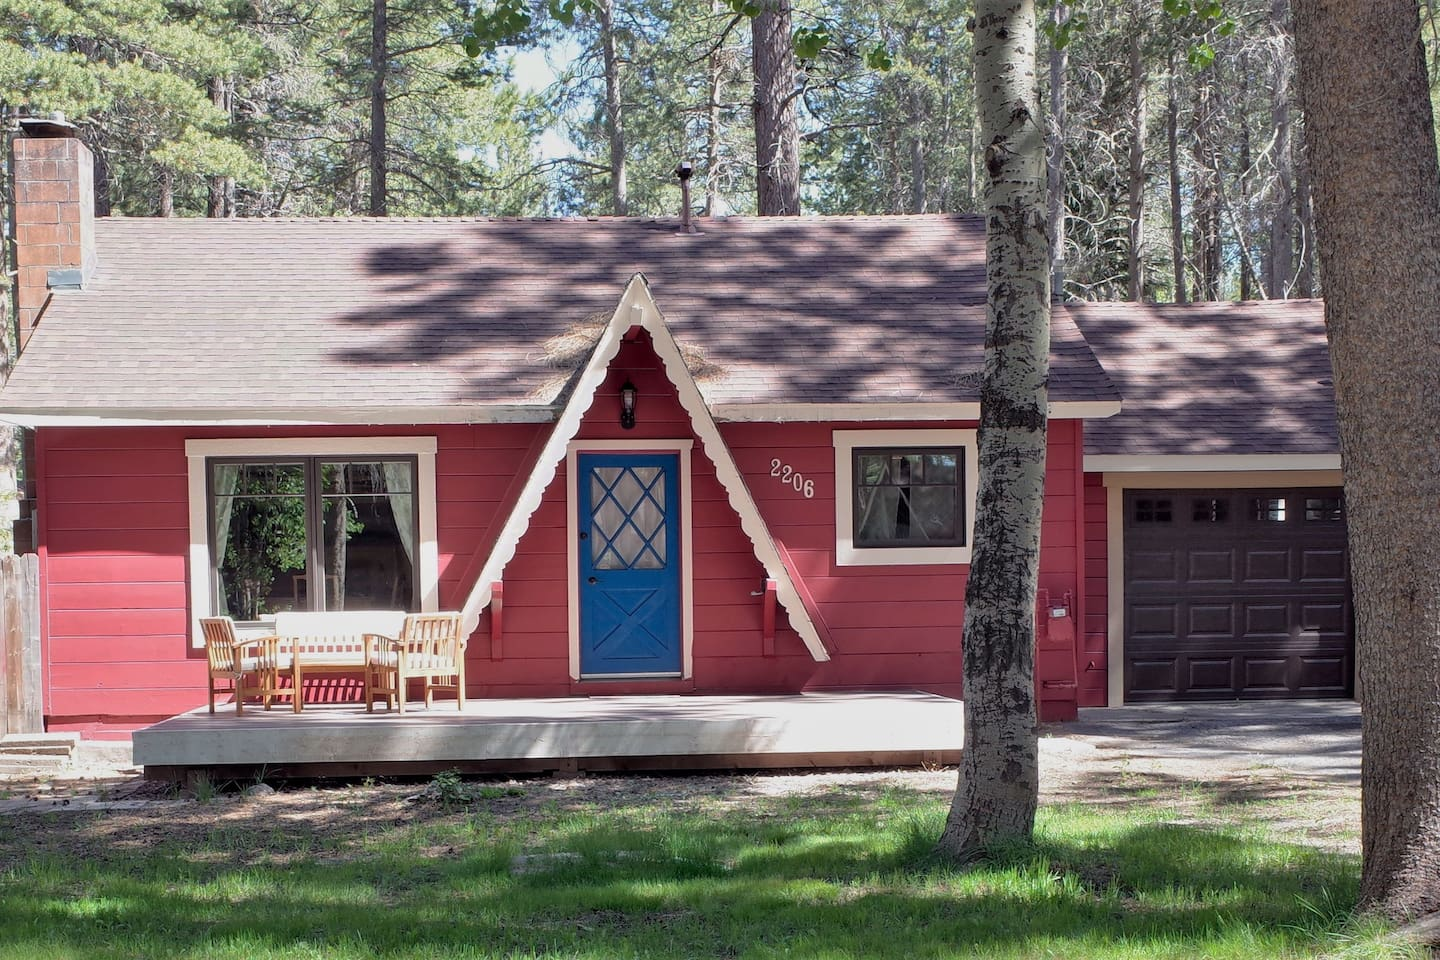 Traditional Tahoe cottage recently renovated with modern features offers a comfortable mountain getaway.